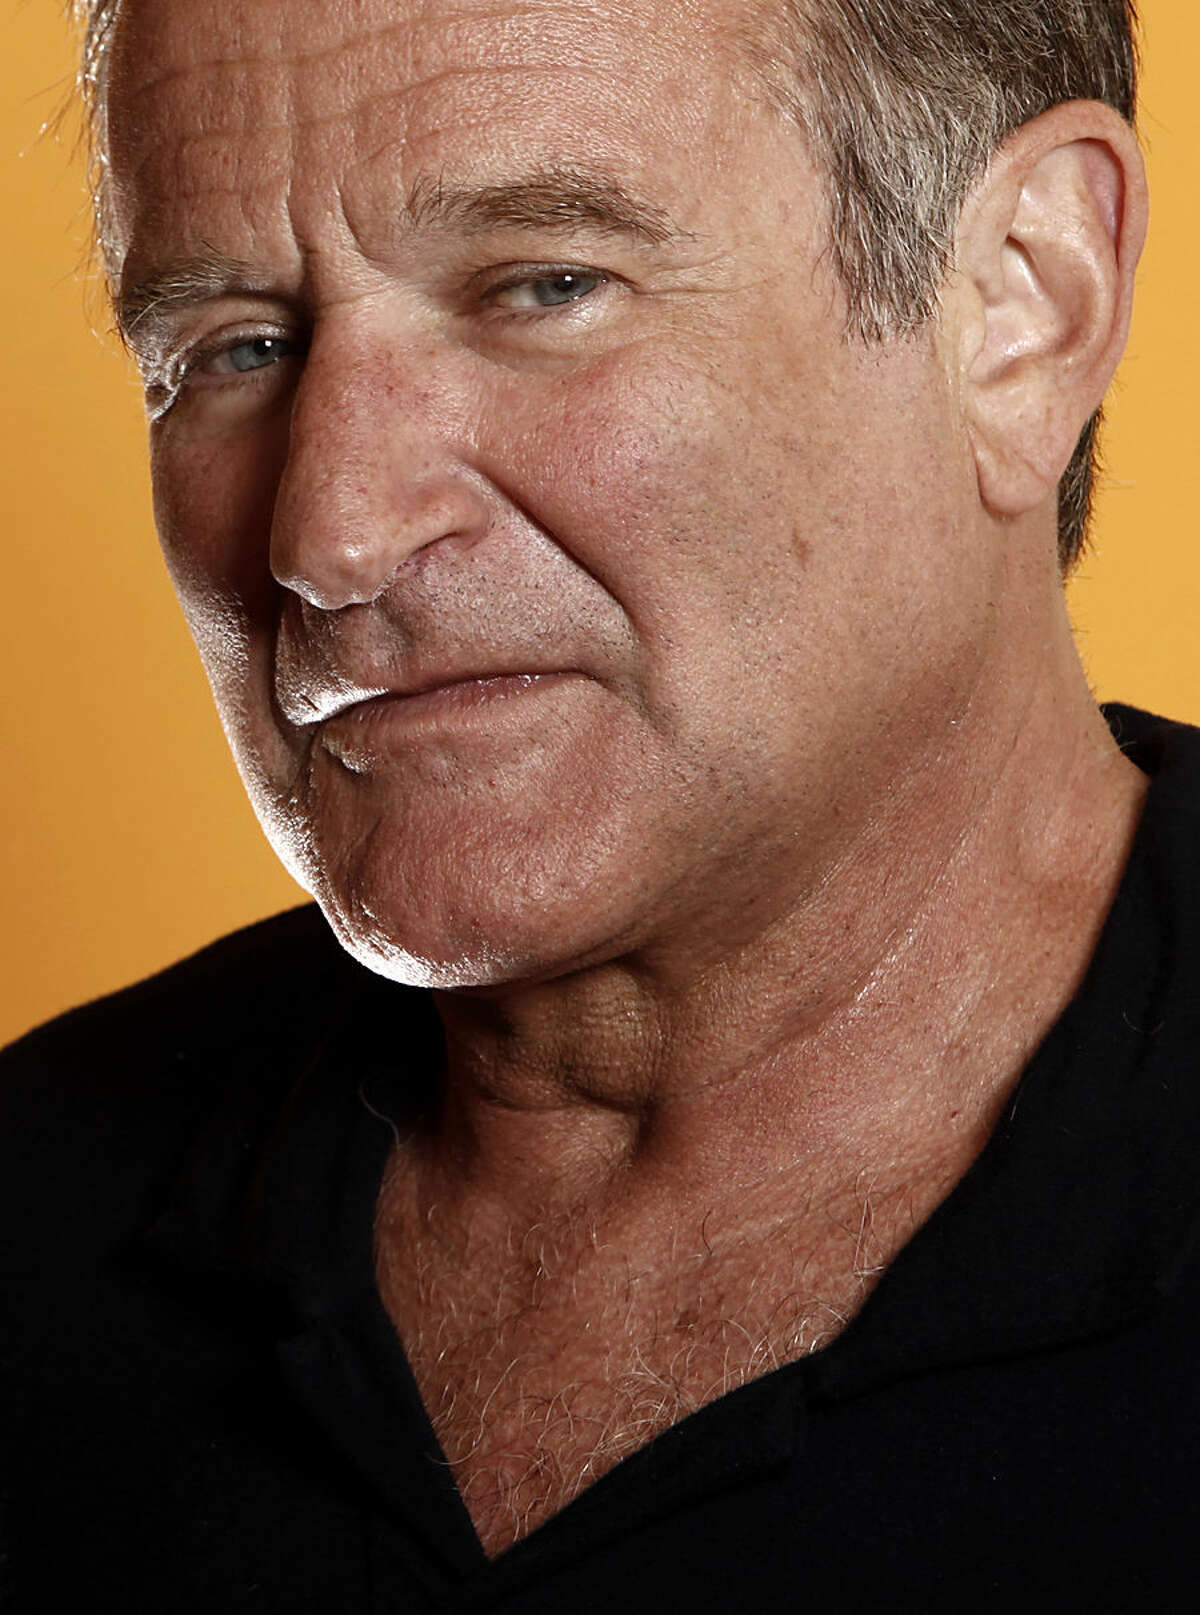 FOR USE AS DESIRED, YEAR END PHOTOS - FILE - This Aug. 14, 2009 file photo shows actor Robin Williams in Los Angeles. Williams, whose free-form comedy and adept impressions dazzled audiences for decades, died Monday, Aug. 11, 2014, in an apparent suicide. Williams was 63. (AP Photo/Matt Sayles, File)